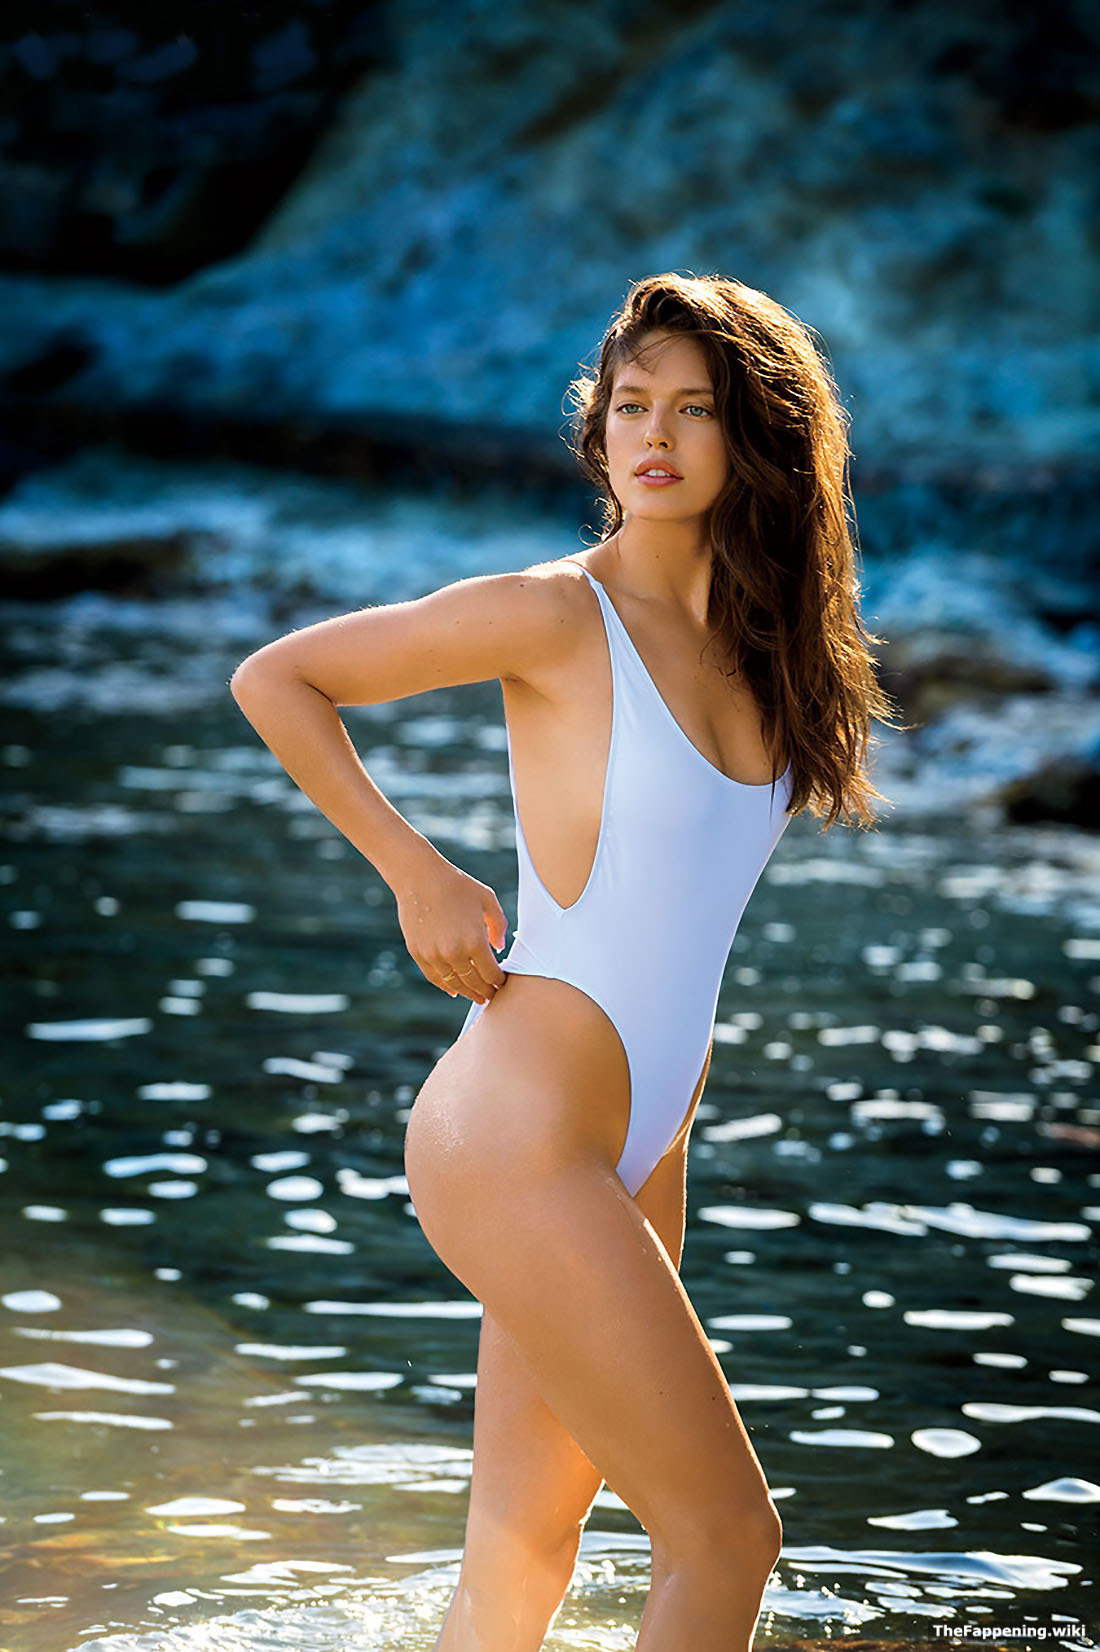 RE: rate Emily Didonato